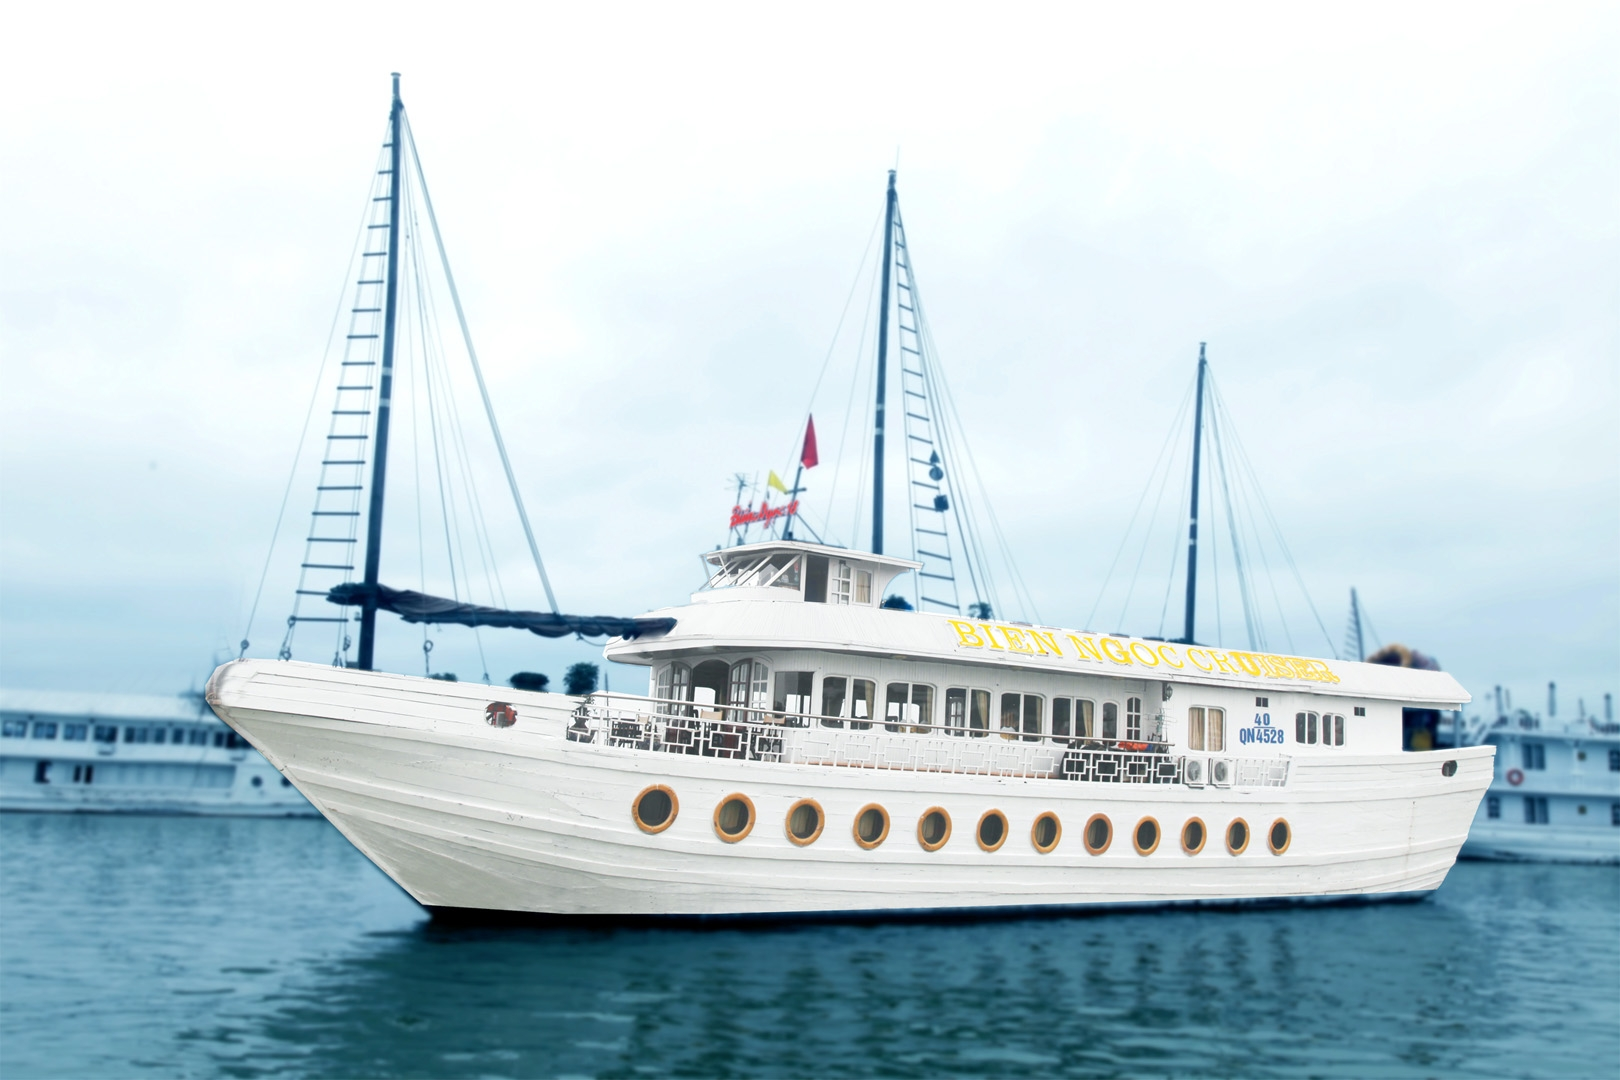 2 DAYS 1 NIGHT HALONG CRUISE ON SEAWIND CRUISE & HELIOS JUNKS